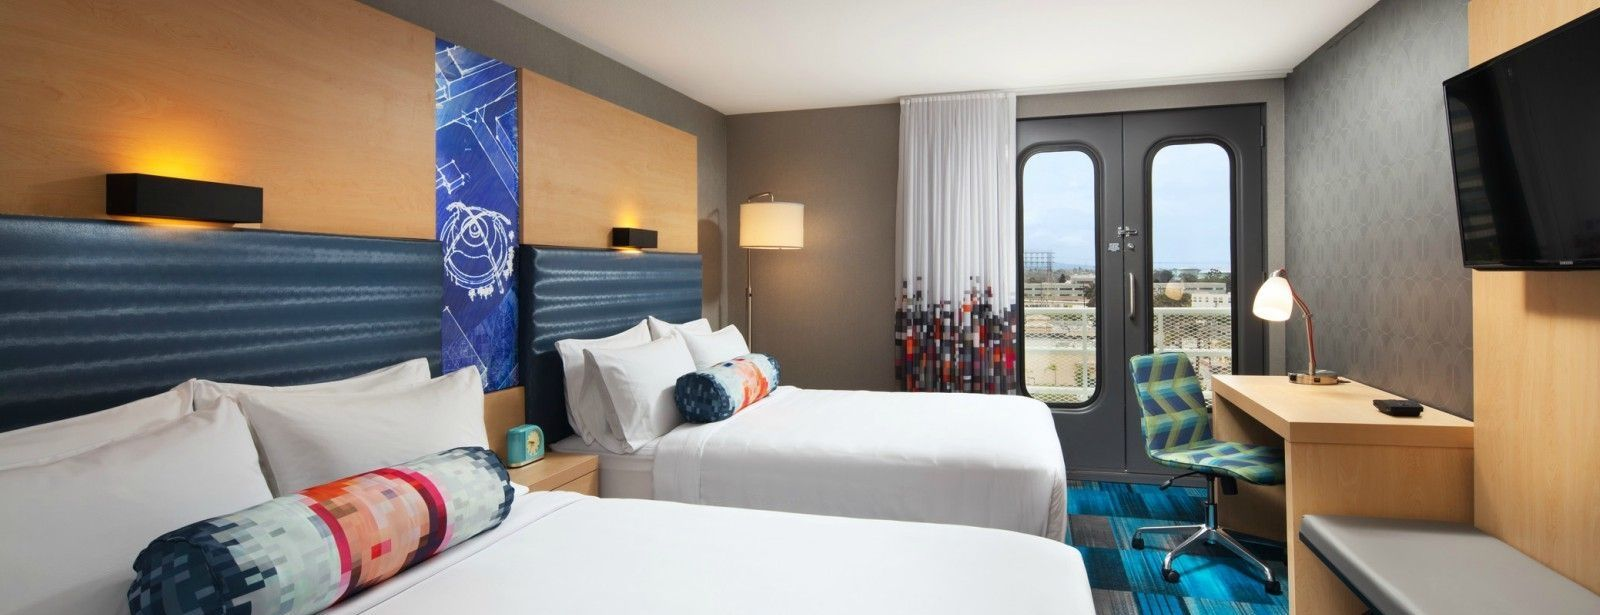 Aloft room - queen beds